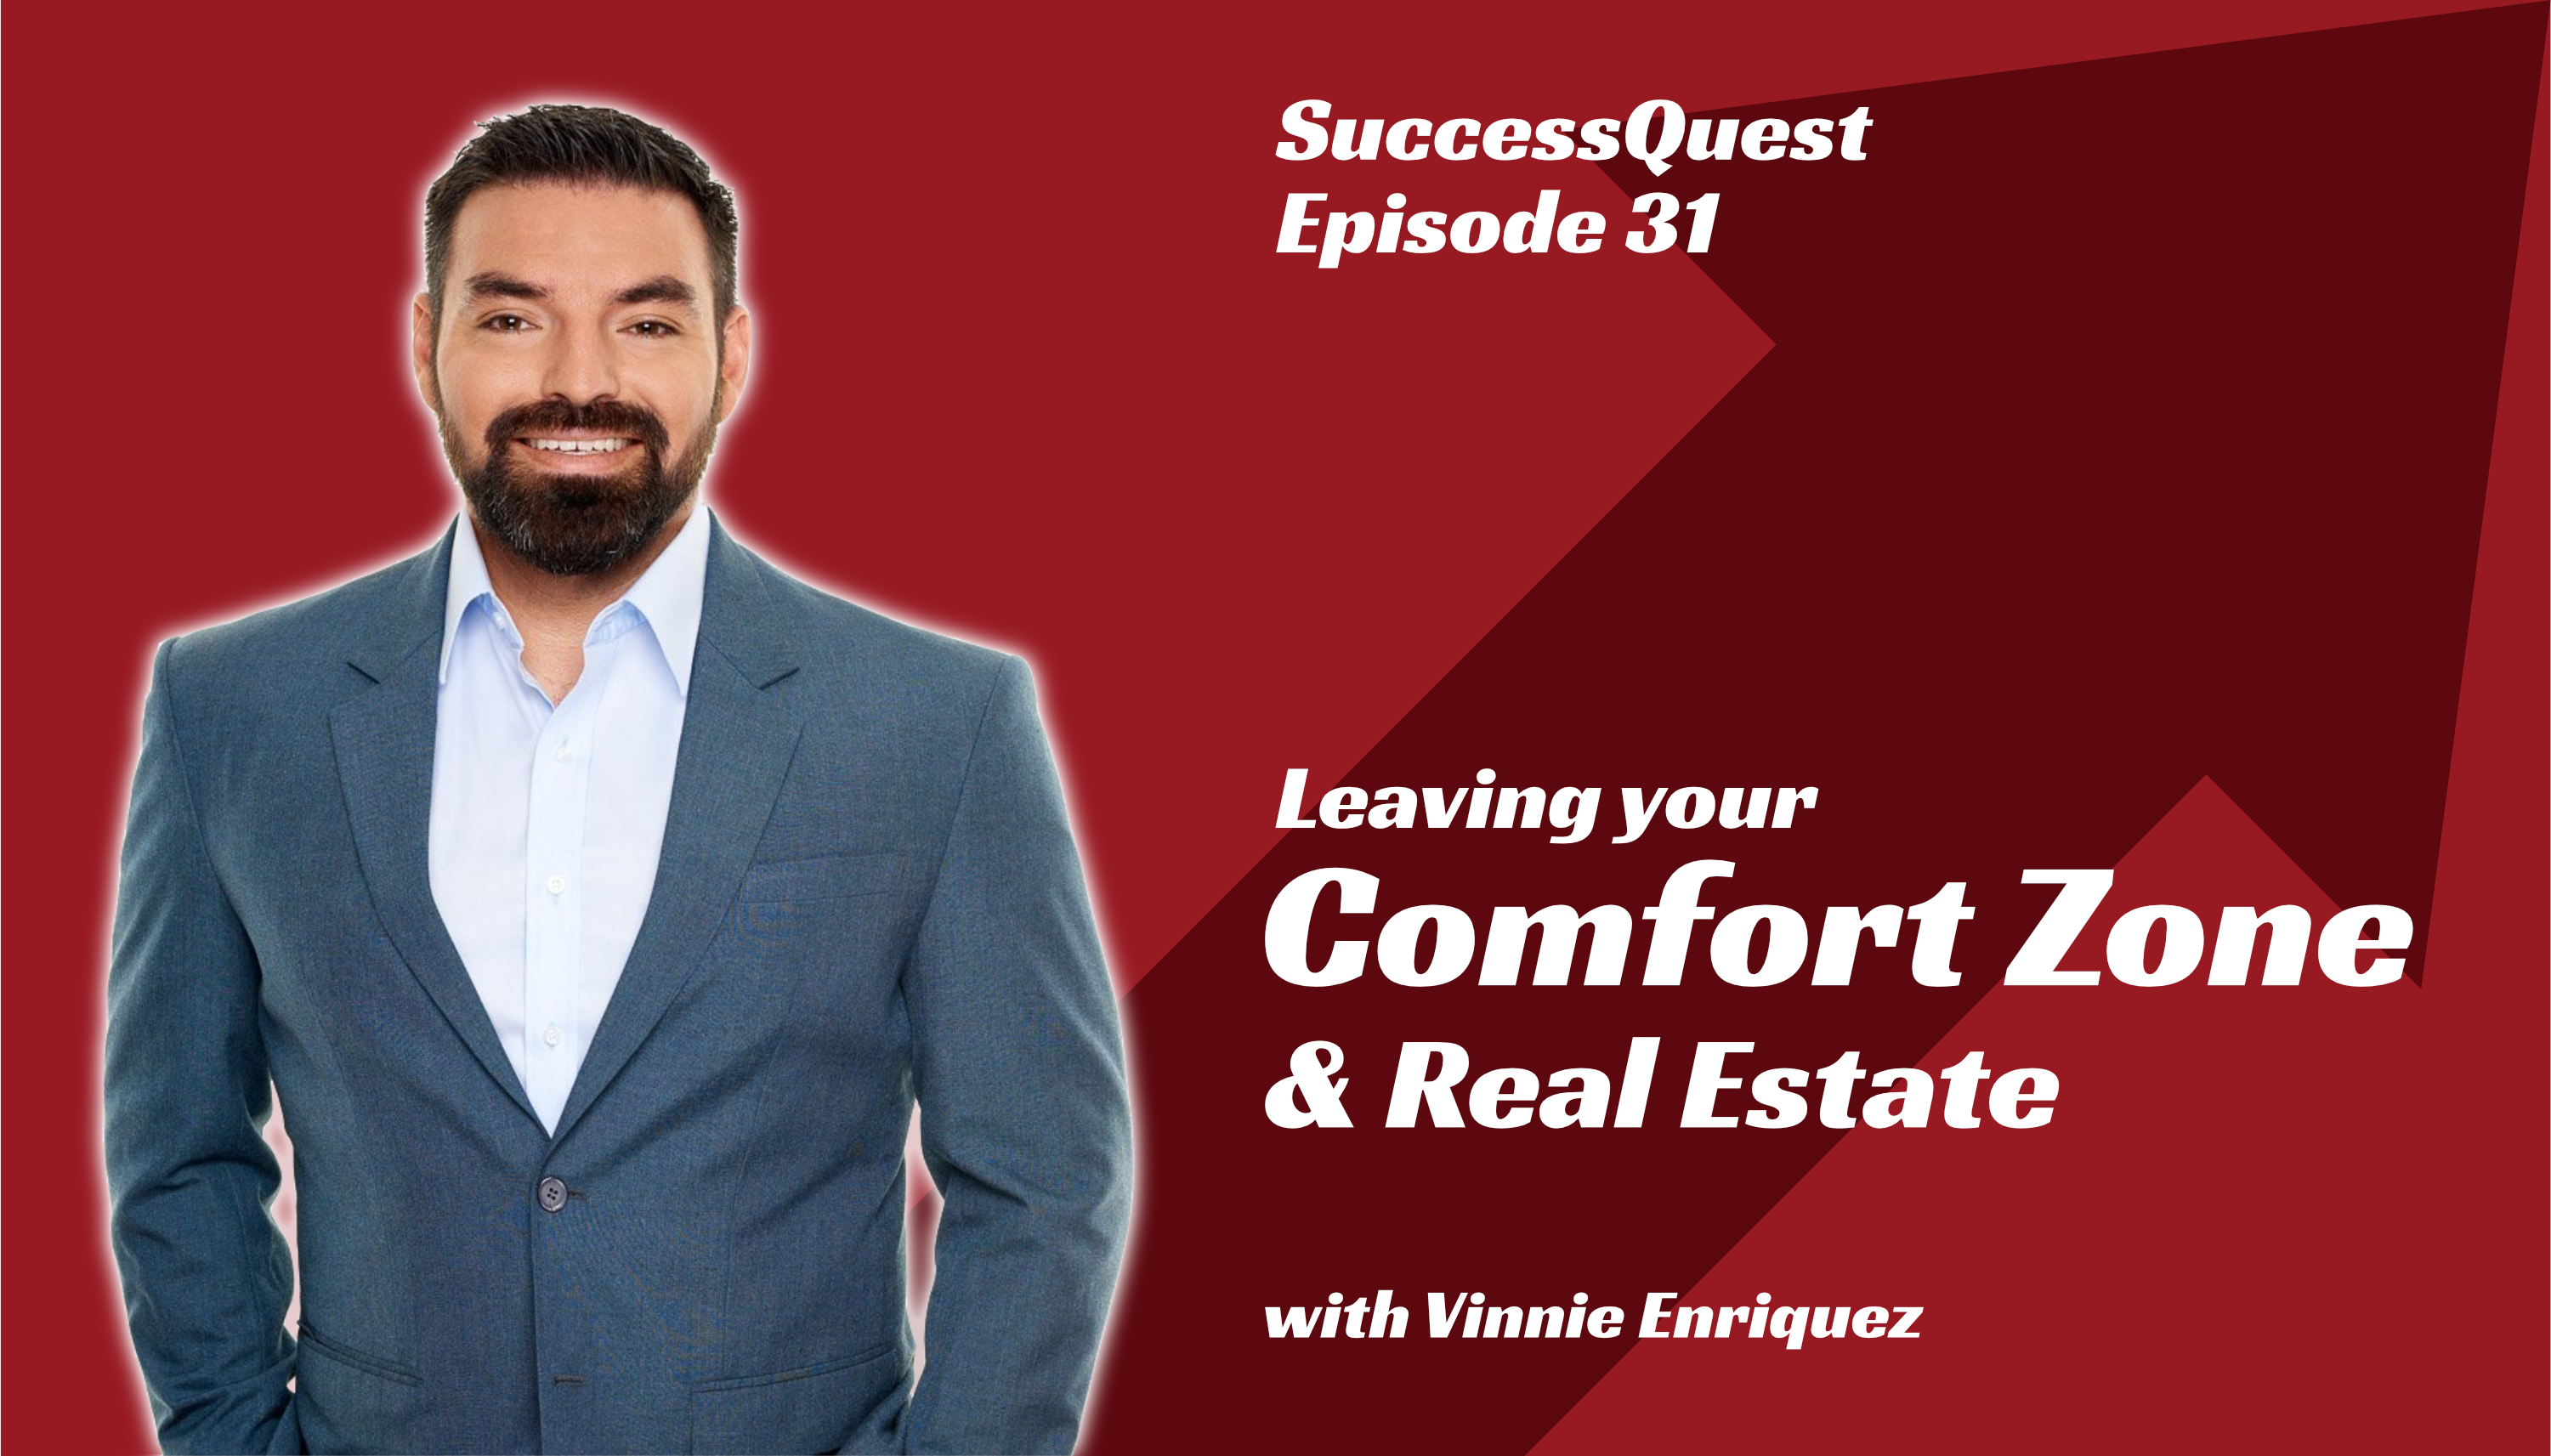 Vicente Vinne Enriquez leaving comfort zone real estate